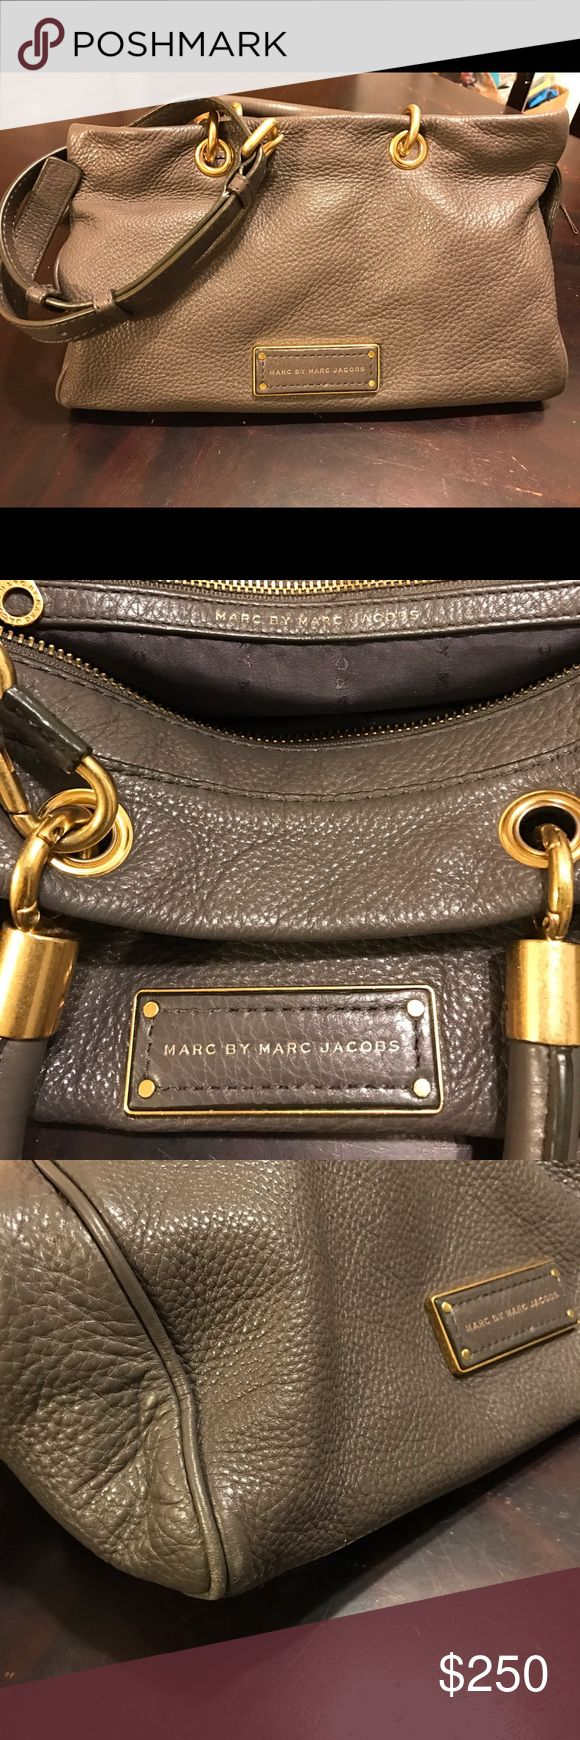 Selling this Marc By Marc Jacobs on Poshmark! My username is: neyo. #shopmycloset #poshmark #fashion #shopping #style #forsale #Marc by Marc Jacobs #Handbags